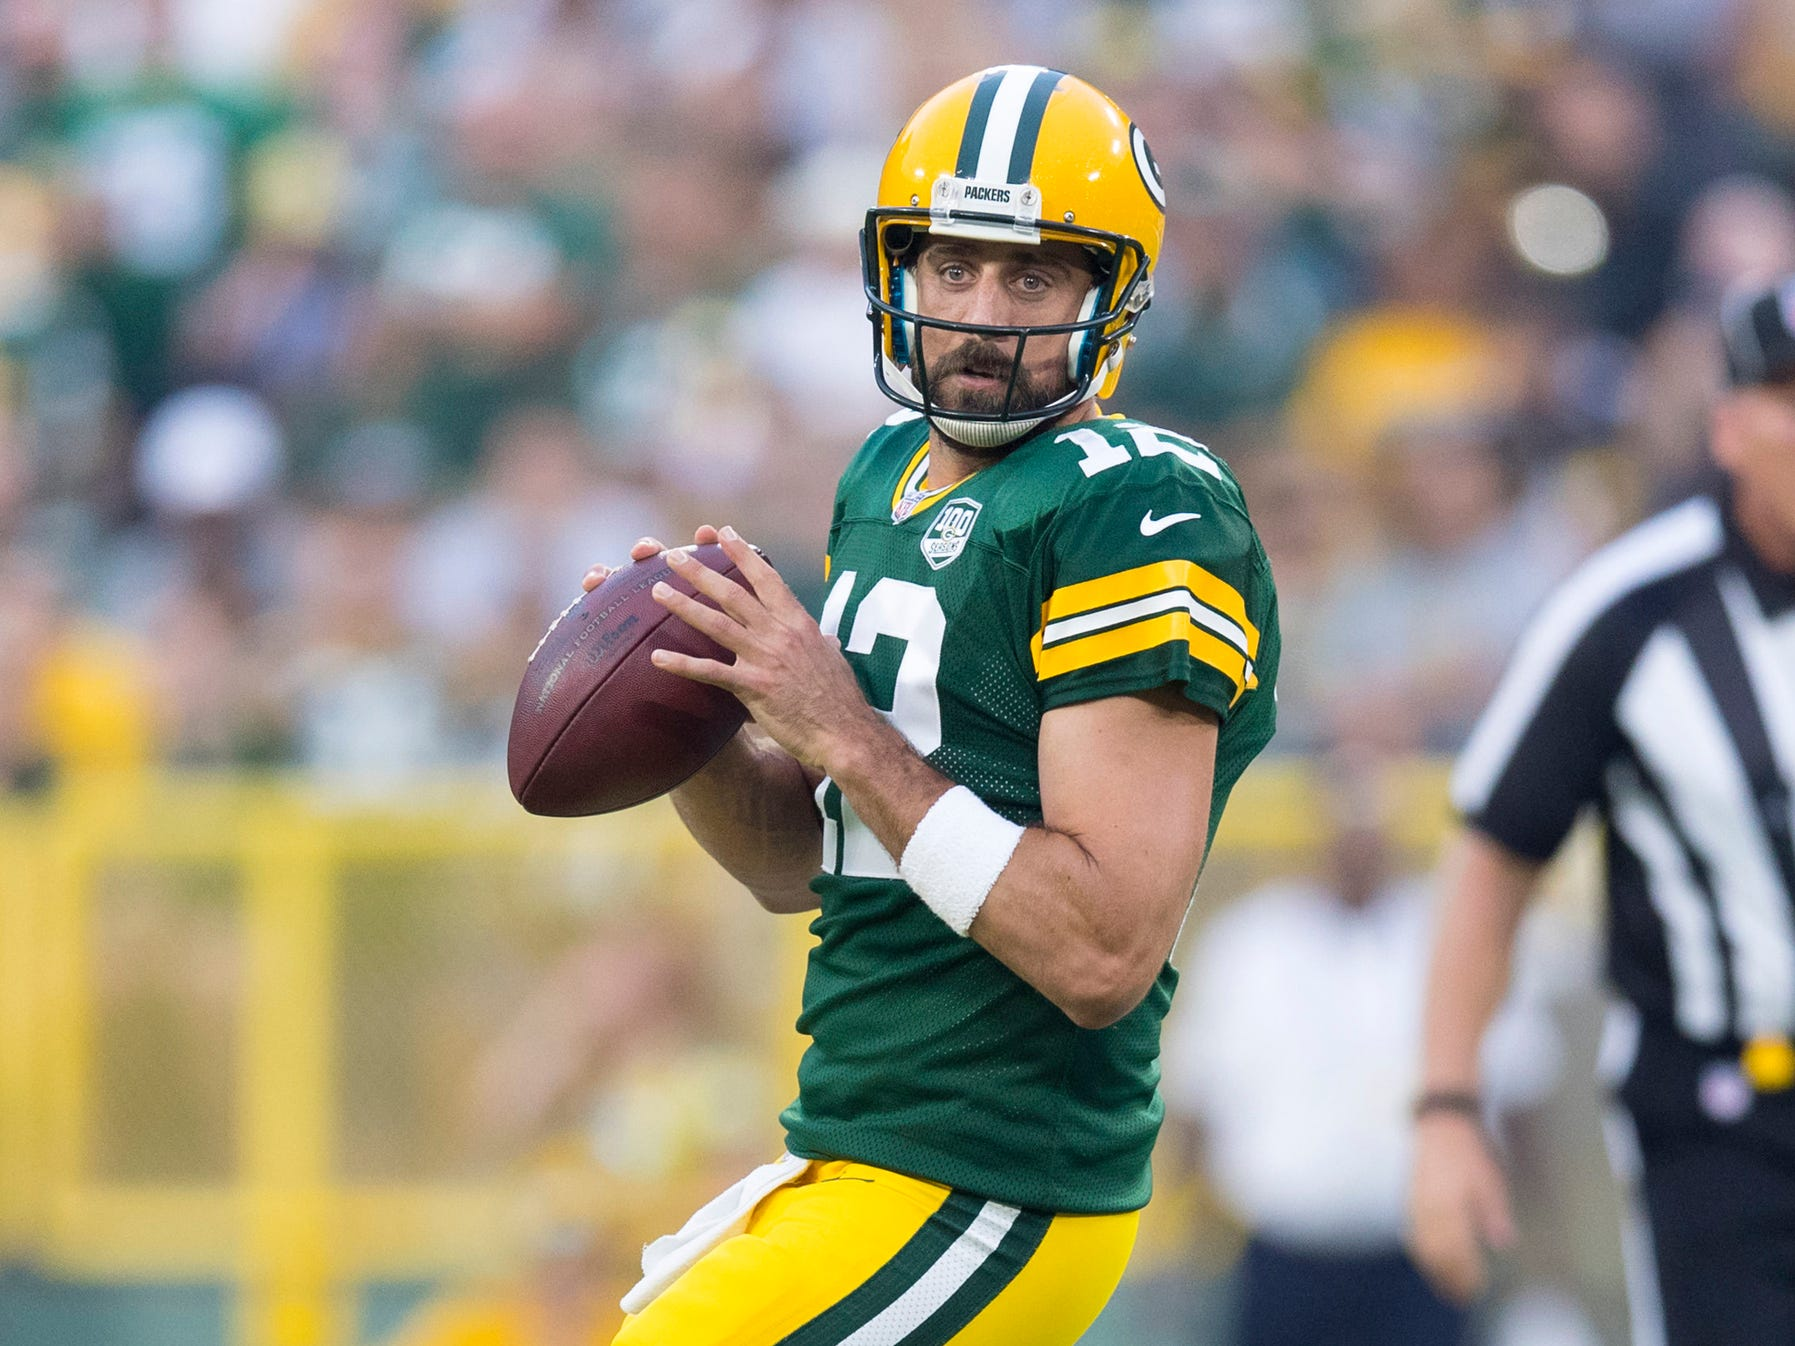 4. Green Bay Packers at New England Patriots, Week 9, 8:20 p.m. Nov. 4, NBC: These meetings between Brady, 41, and Aaron Rodgers, 34, are winding down. Soak in what we hope is a great game between two of the greatest quarterbacks to ever play the game.